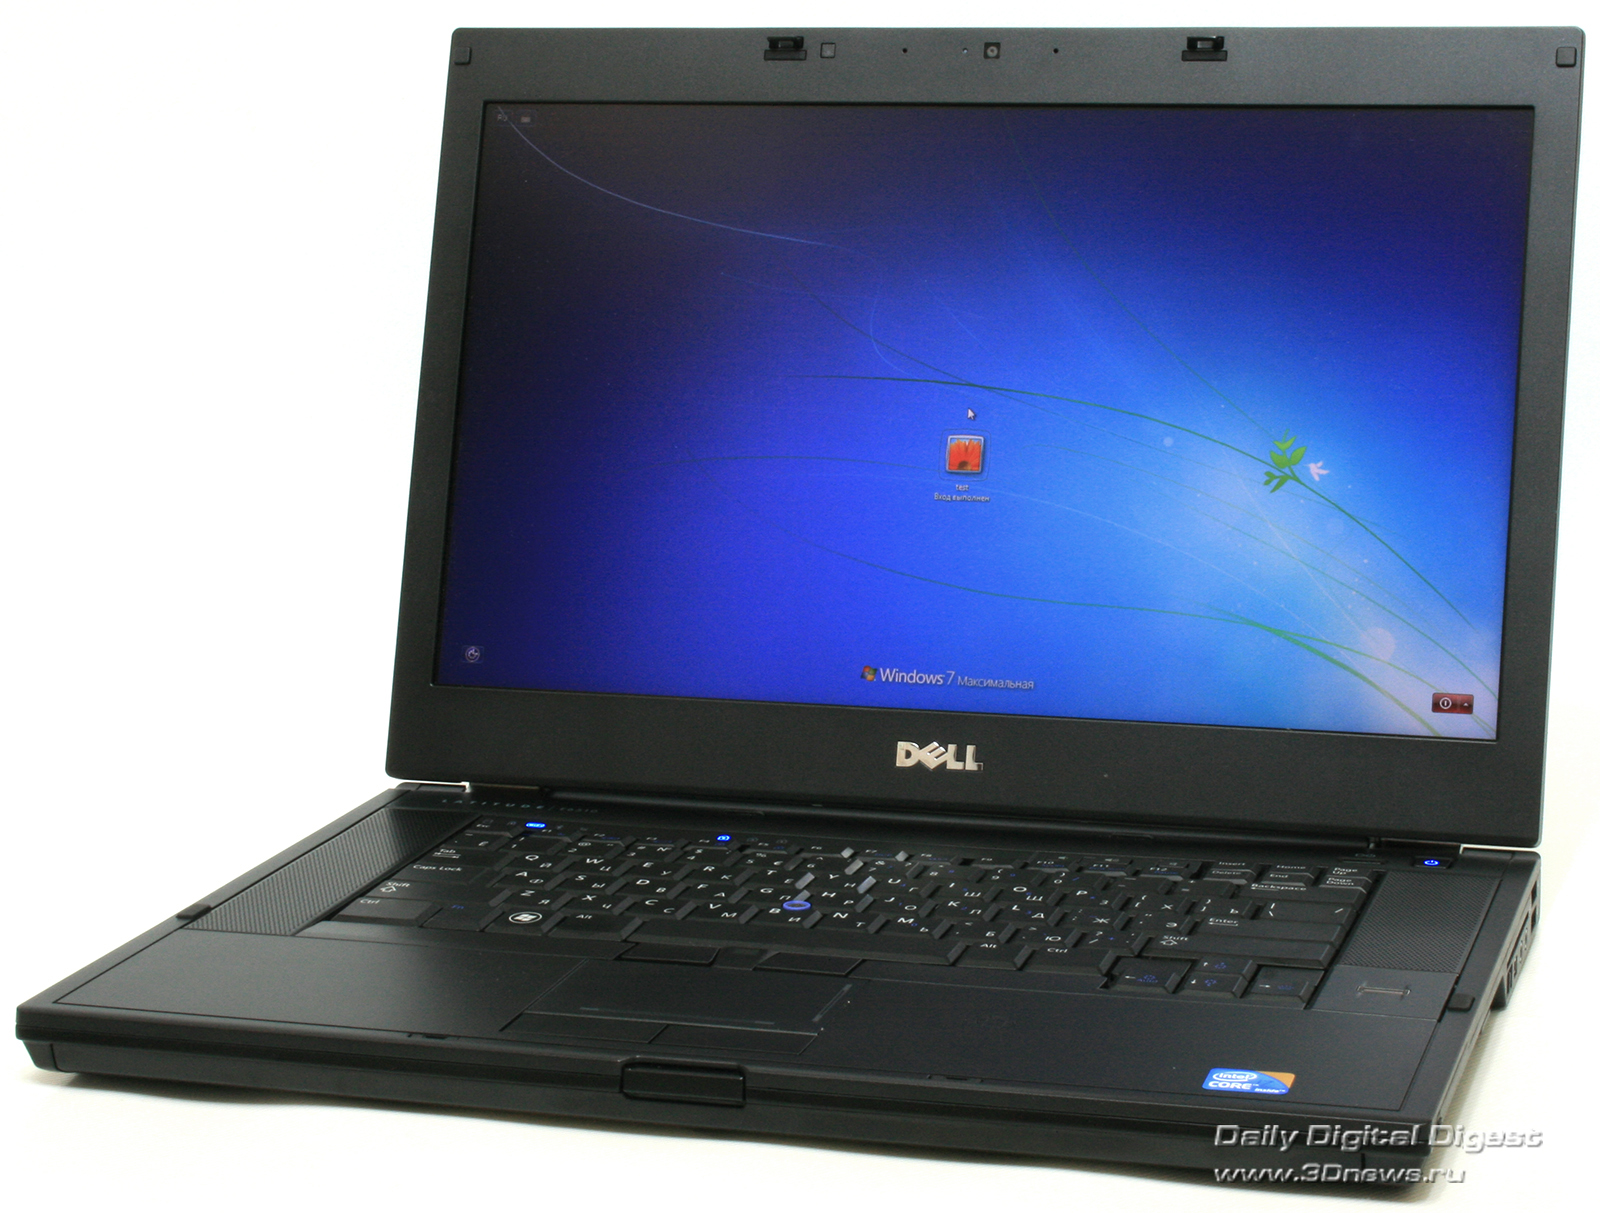 Dell Latitude E6510 Schemaitc Diagram